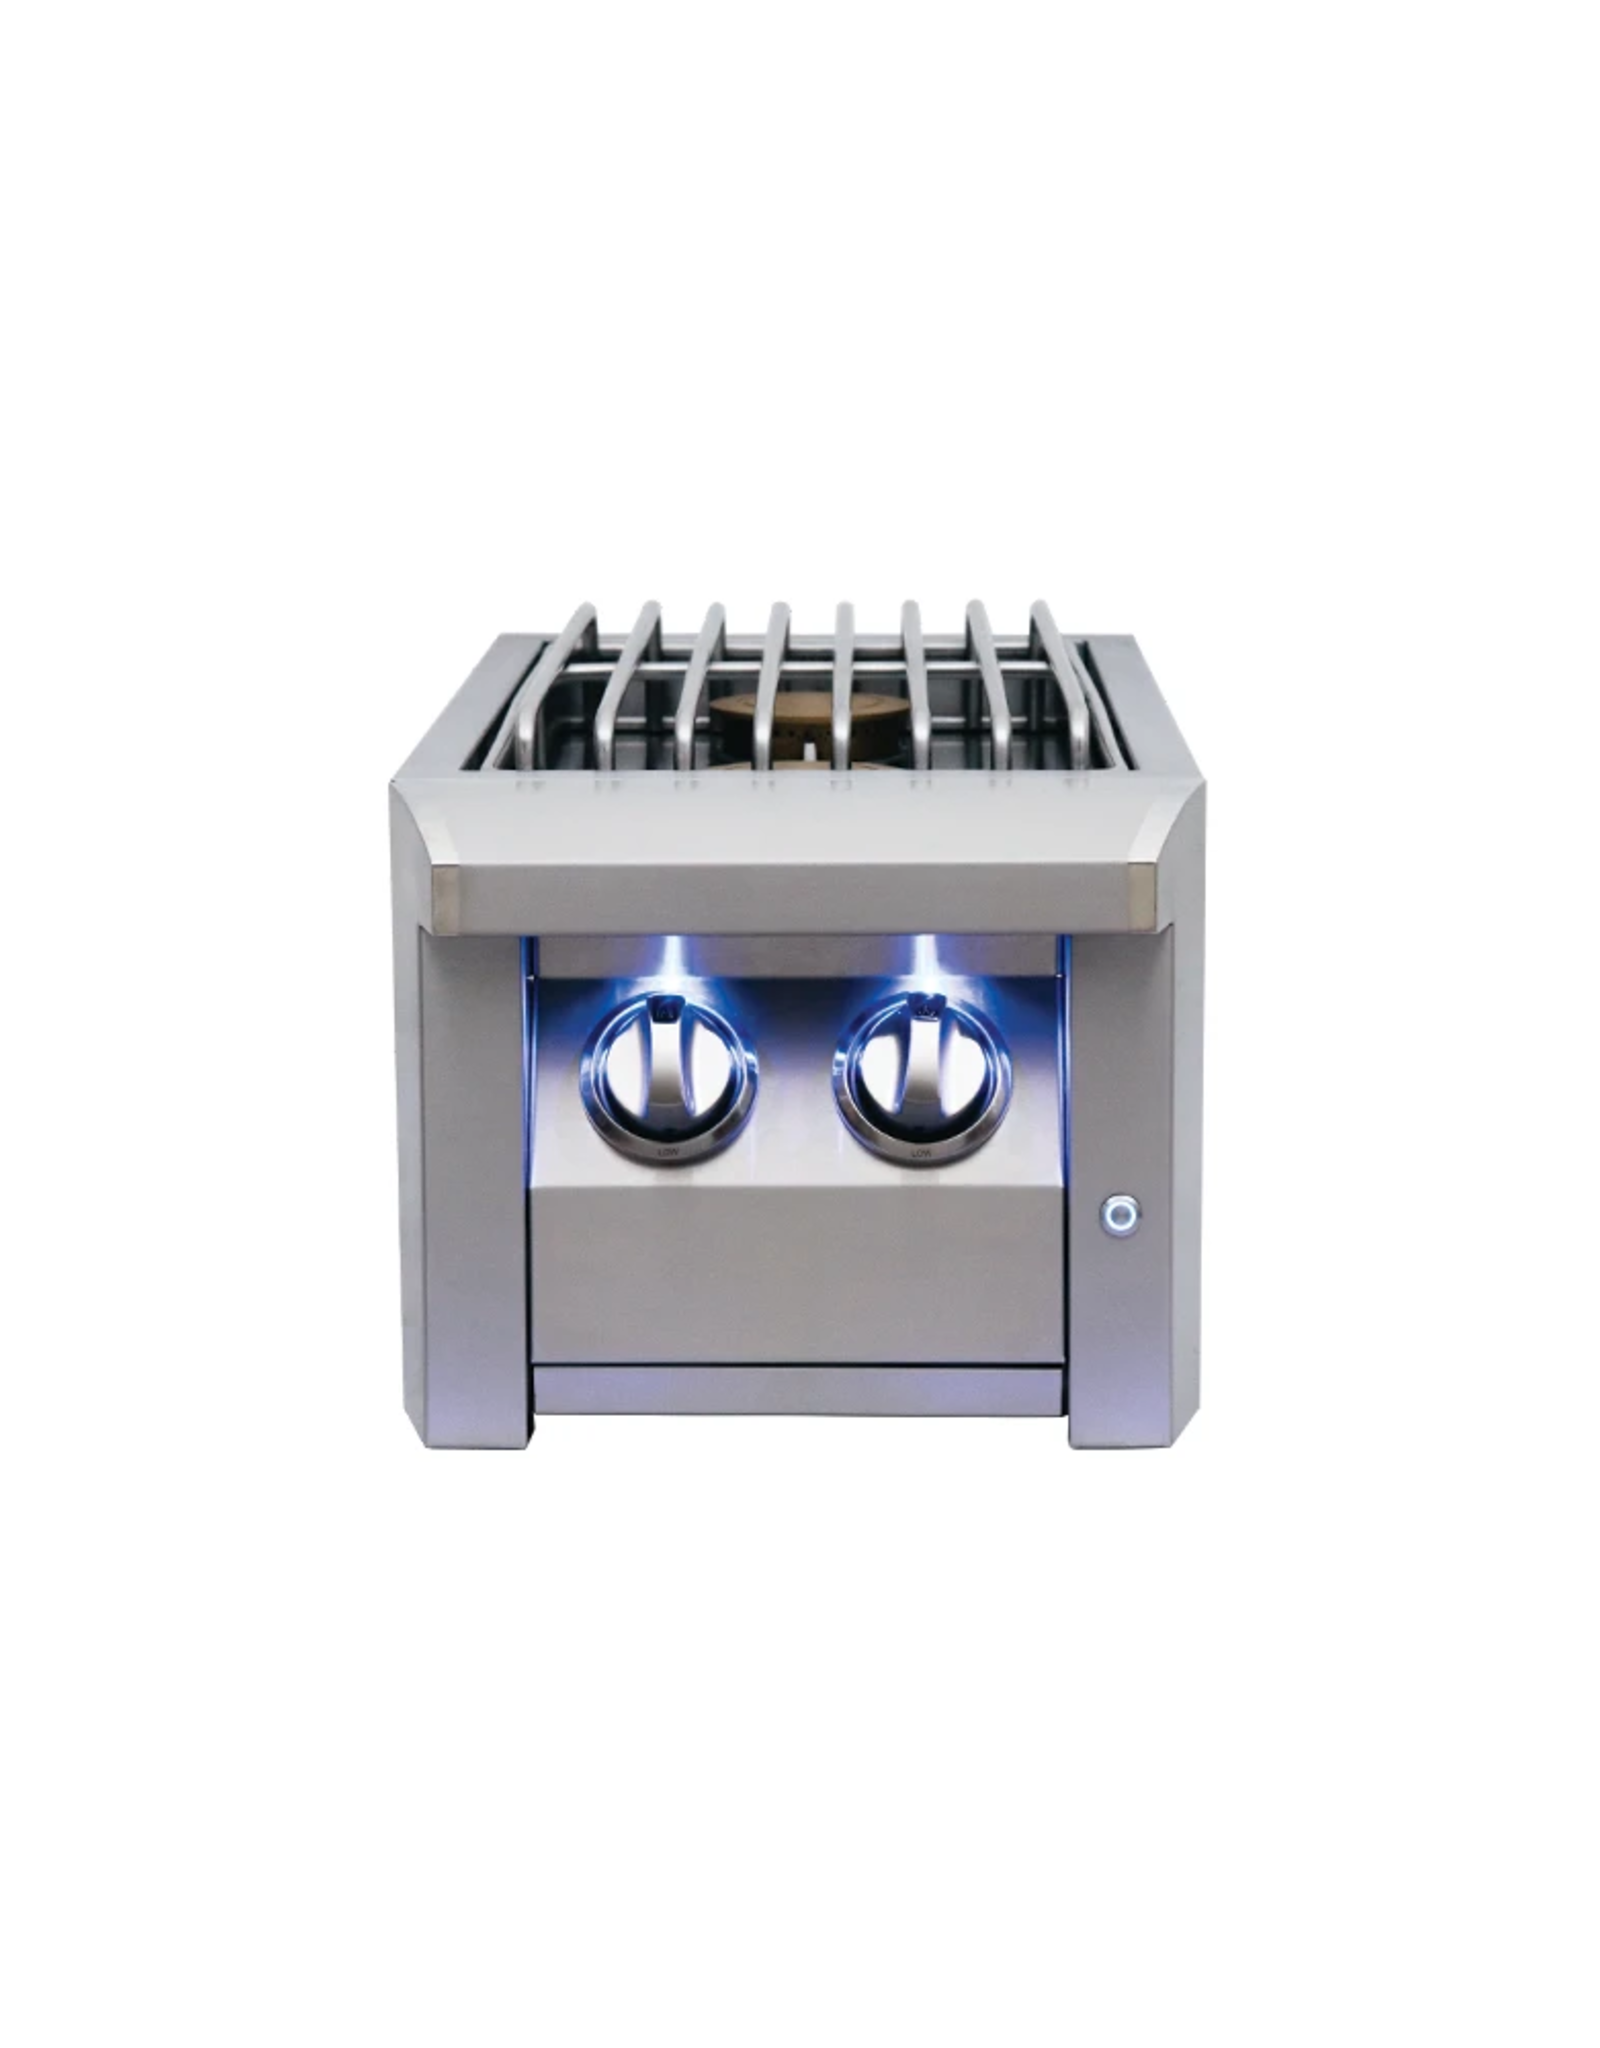 Renaissance Cooking Systems Renaissance Cooking Systems ARG Double Side Burner - ASBSSB